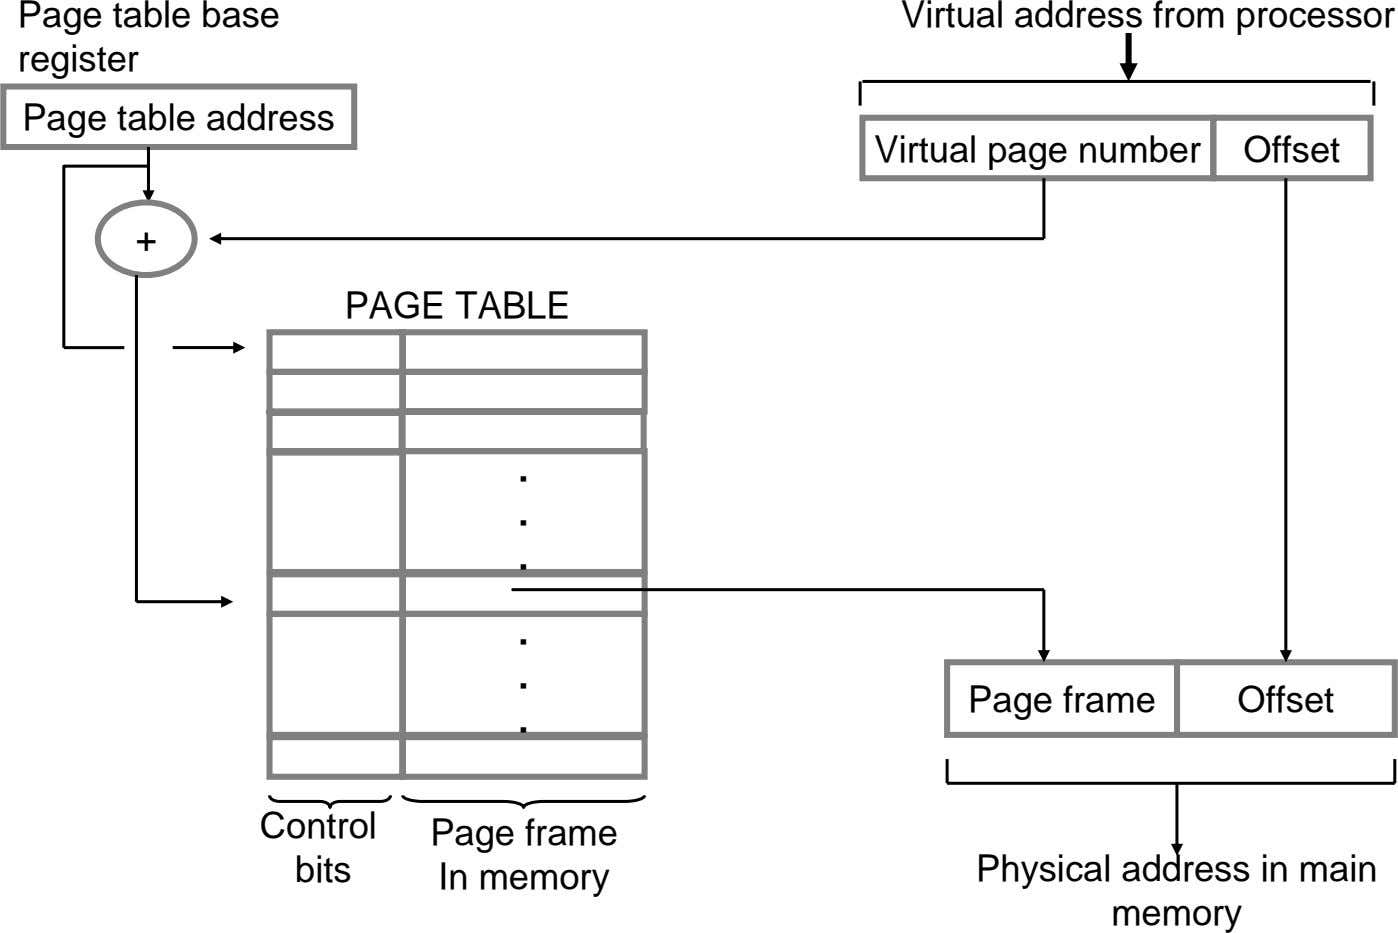 Page table base register Virtual address from processor Page table address Virtual page number Offset